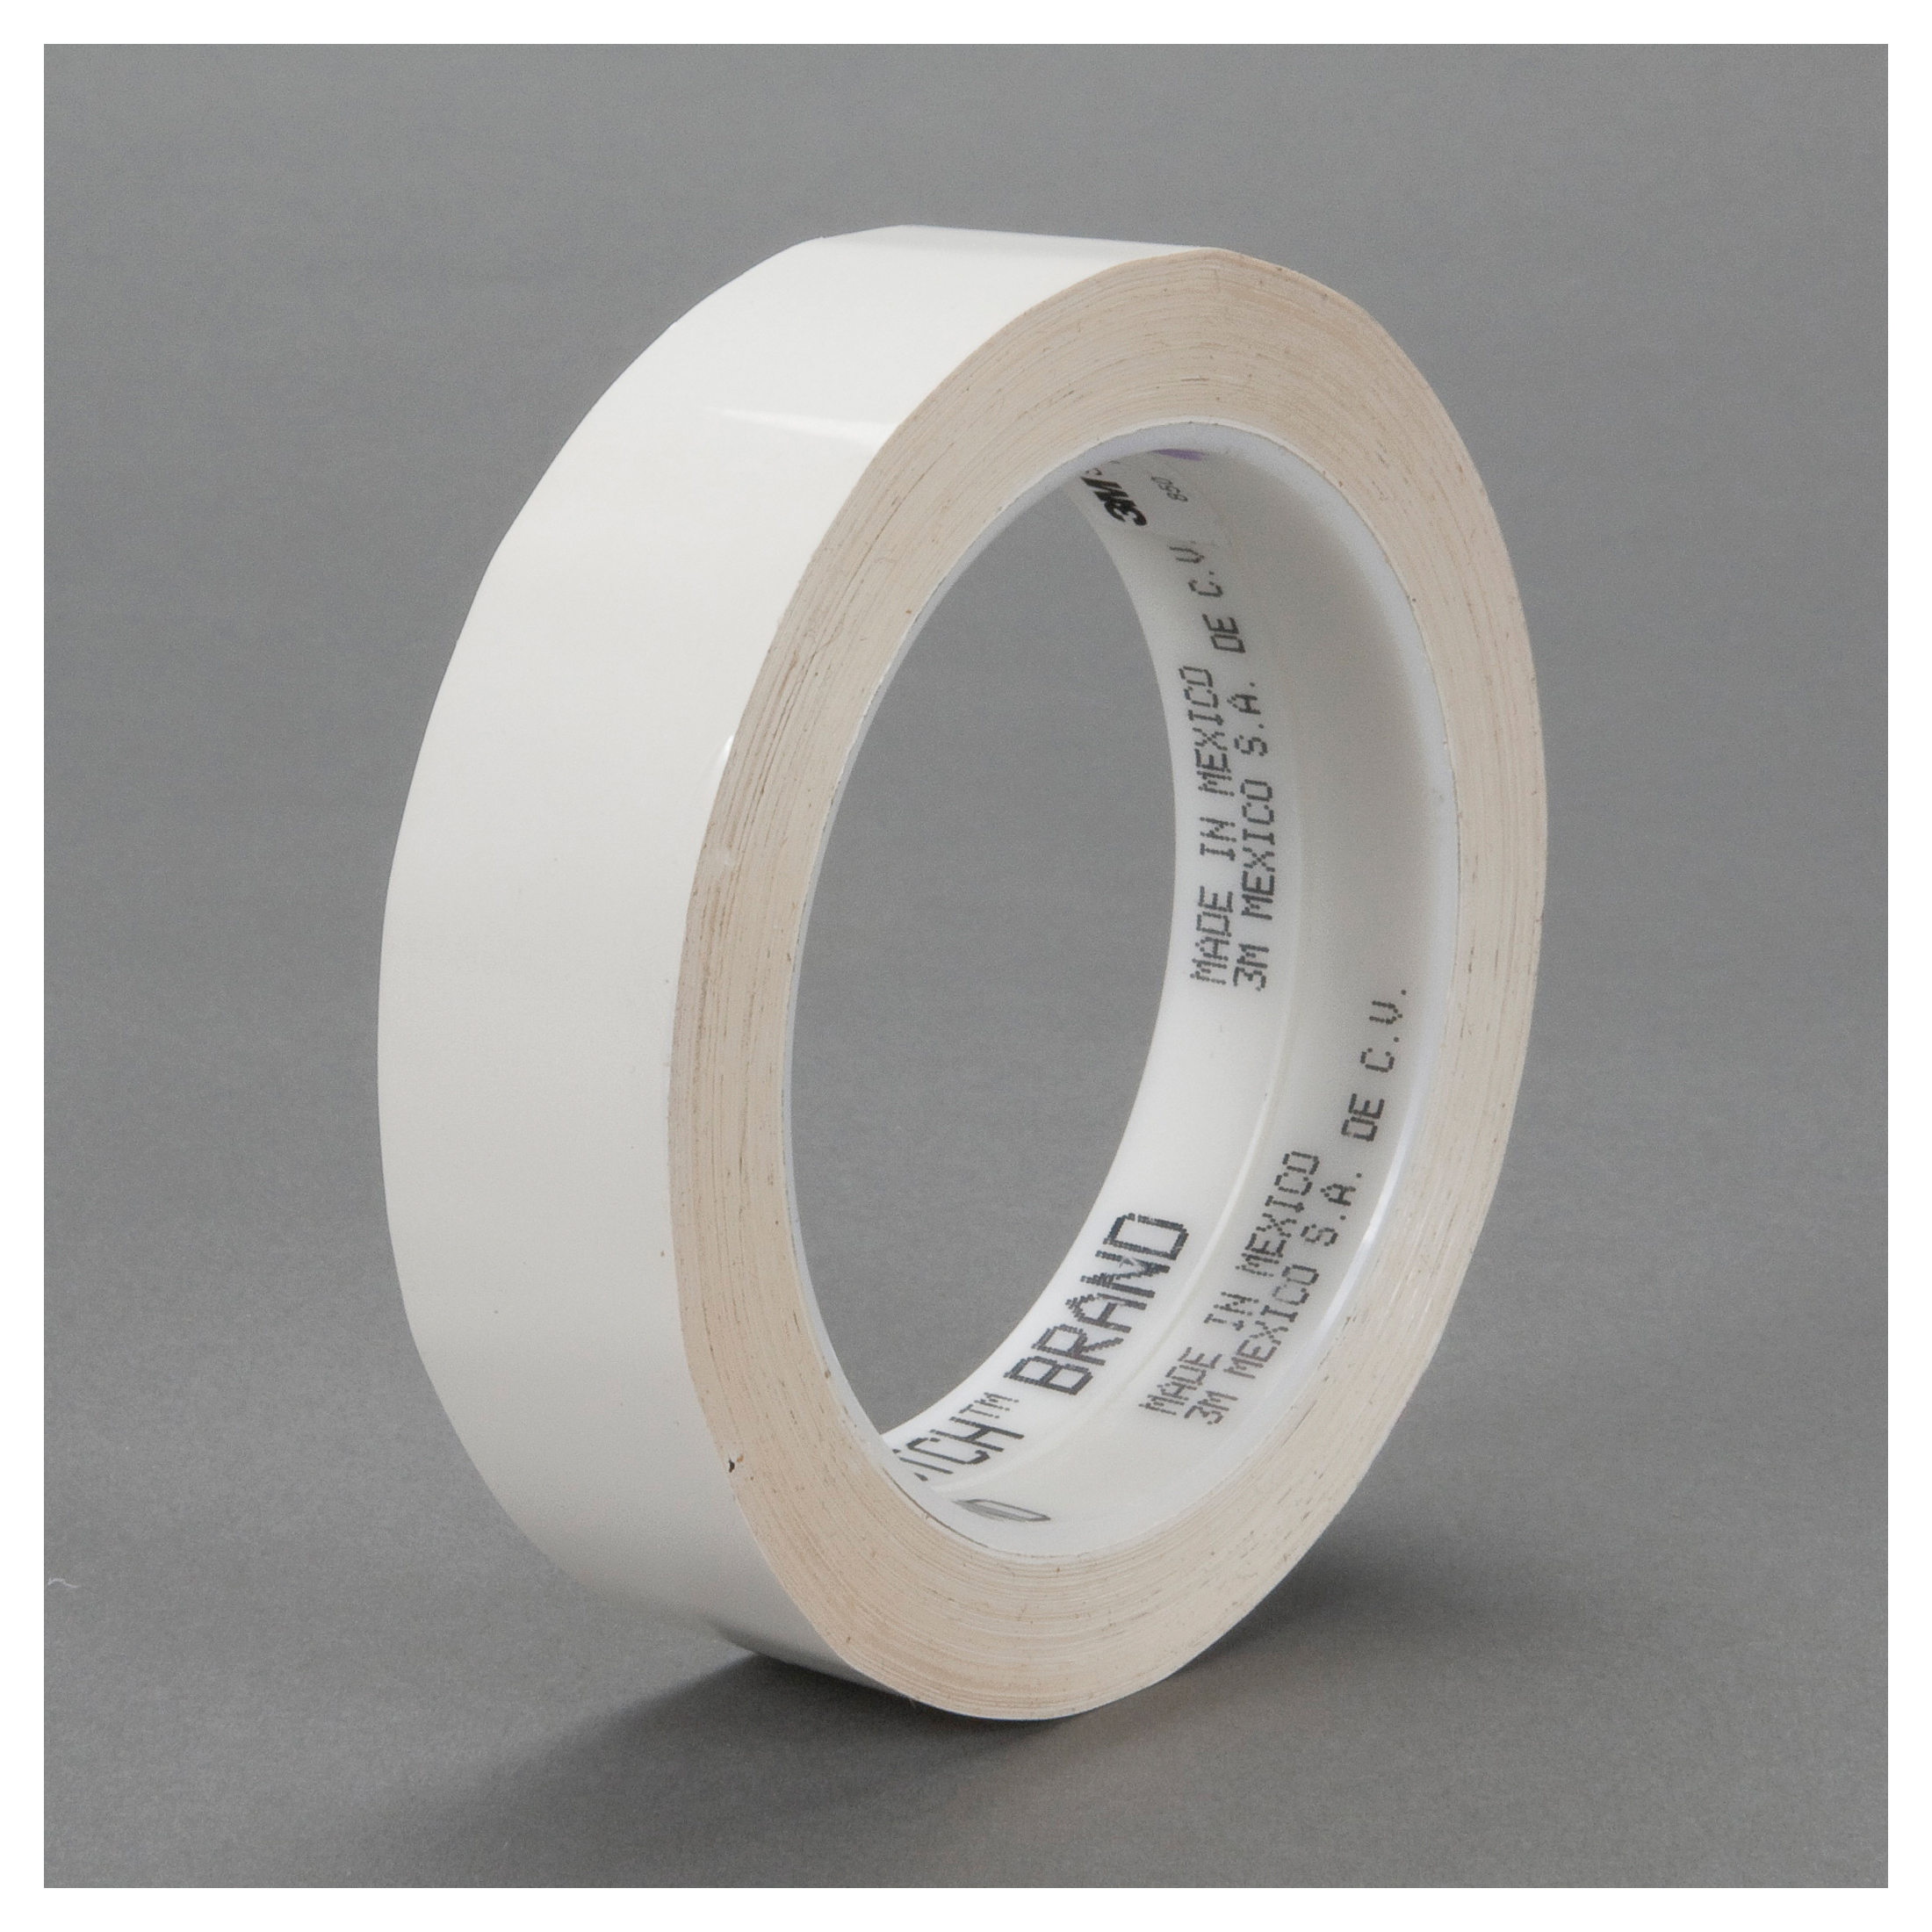 3M™ 021200-03919 Film Tape, 72 yd L x 1 in W, 1.9 mil THK, Acrylic Adhesive, Polyester Backing, White